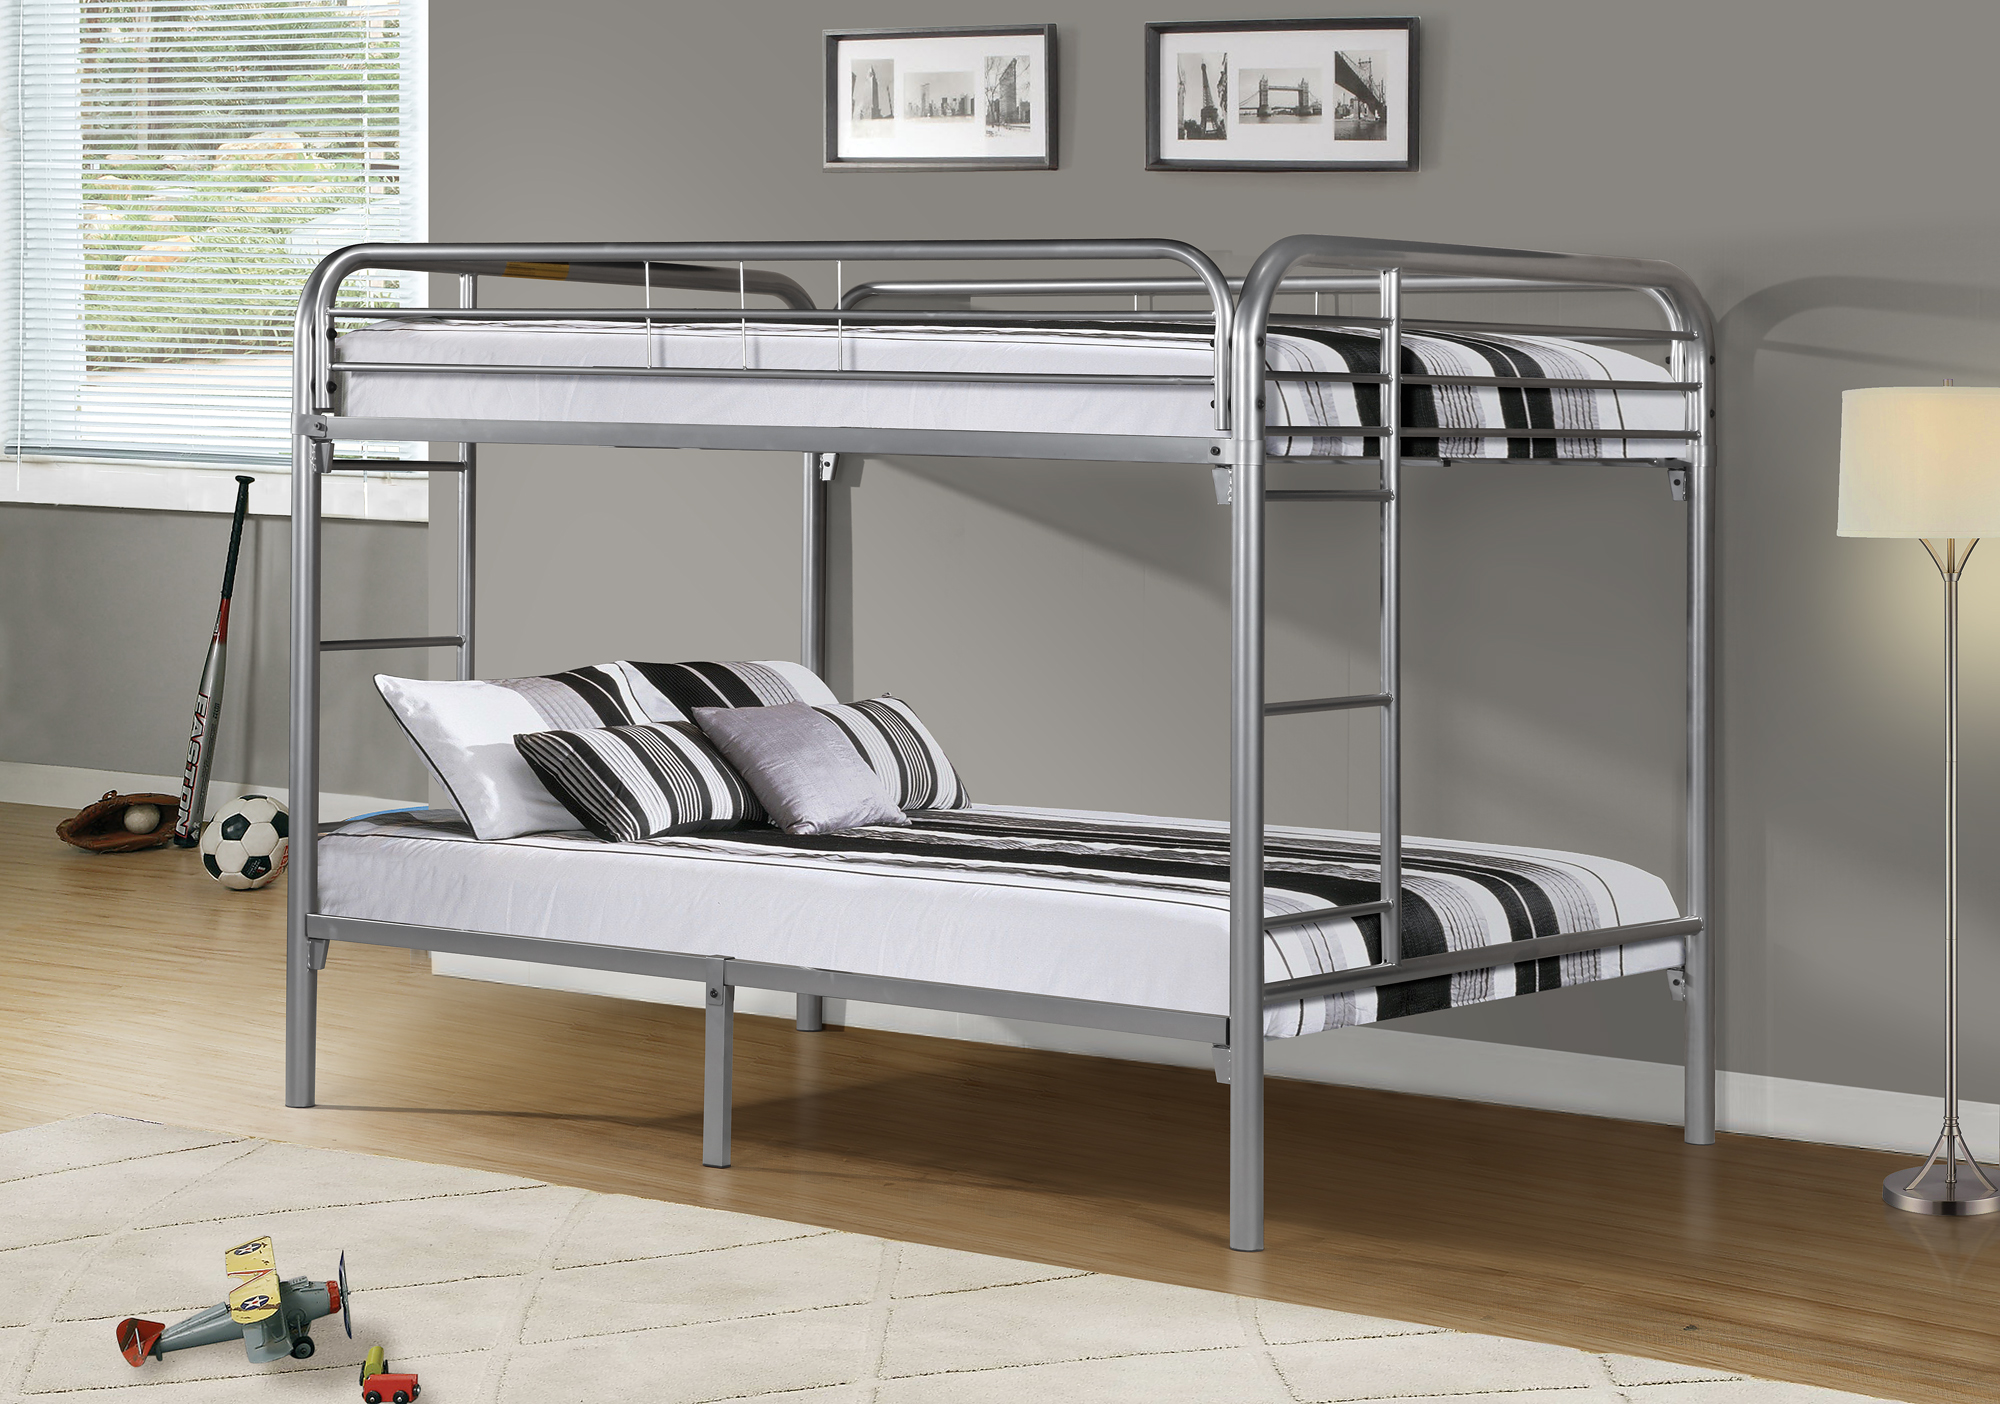 I 2233s Silver Metal Double Double Bunk Bed Frame Brand New